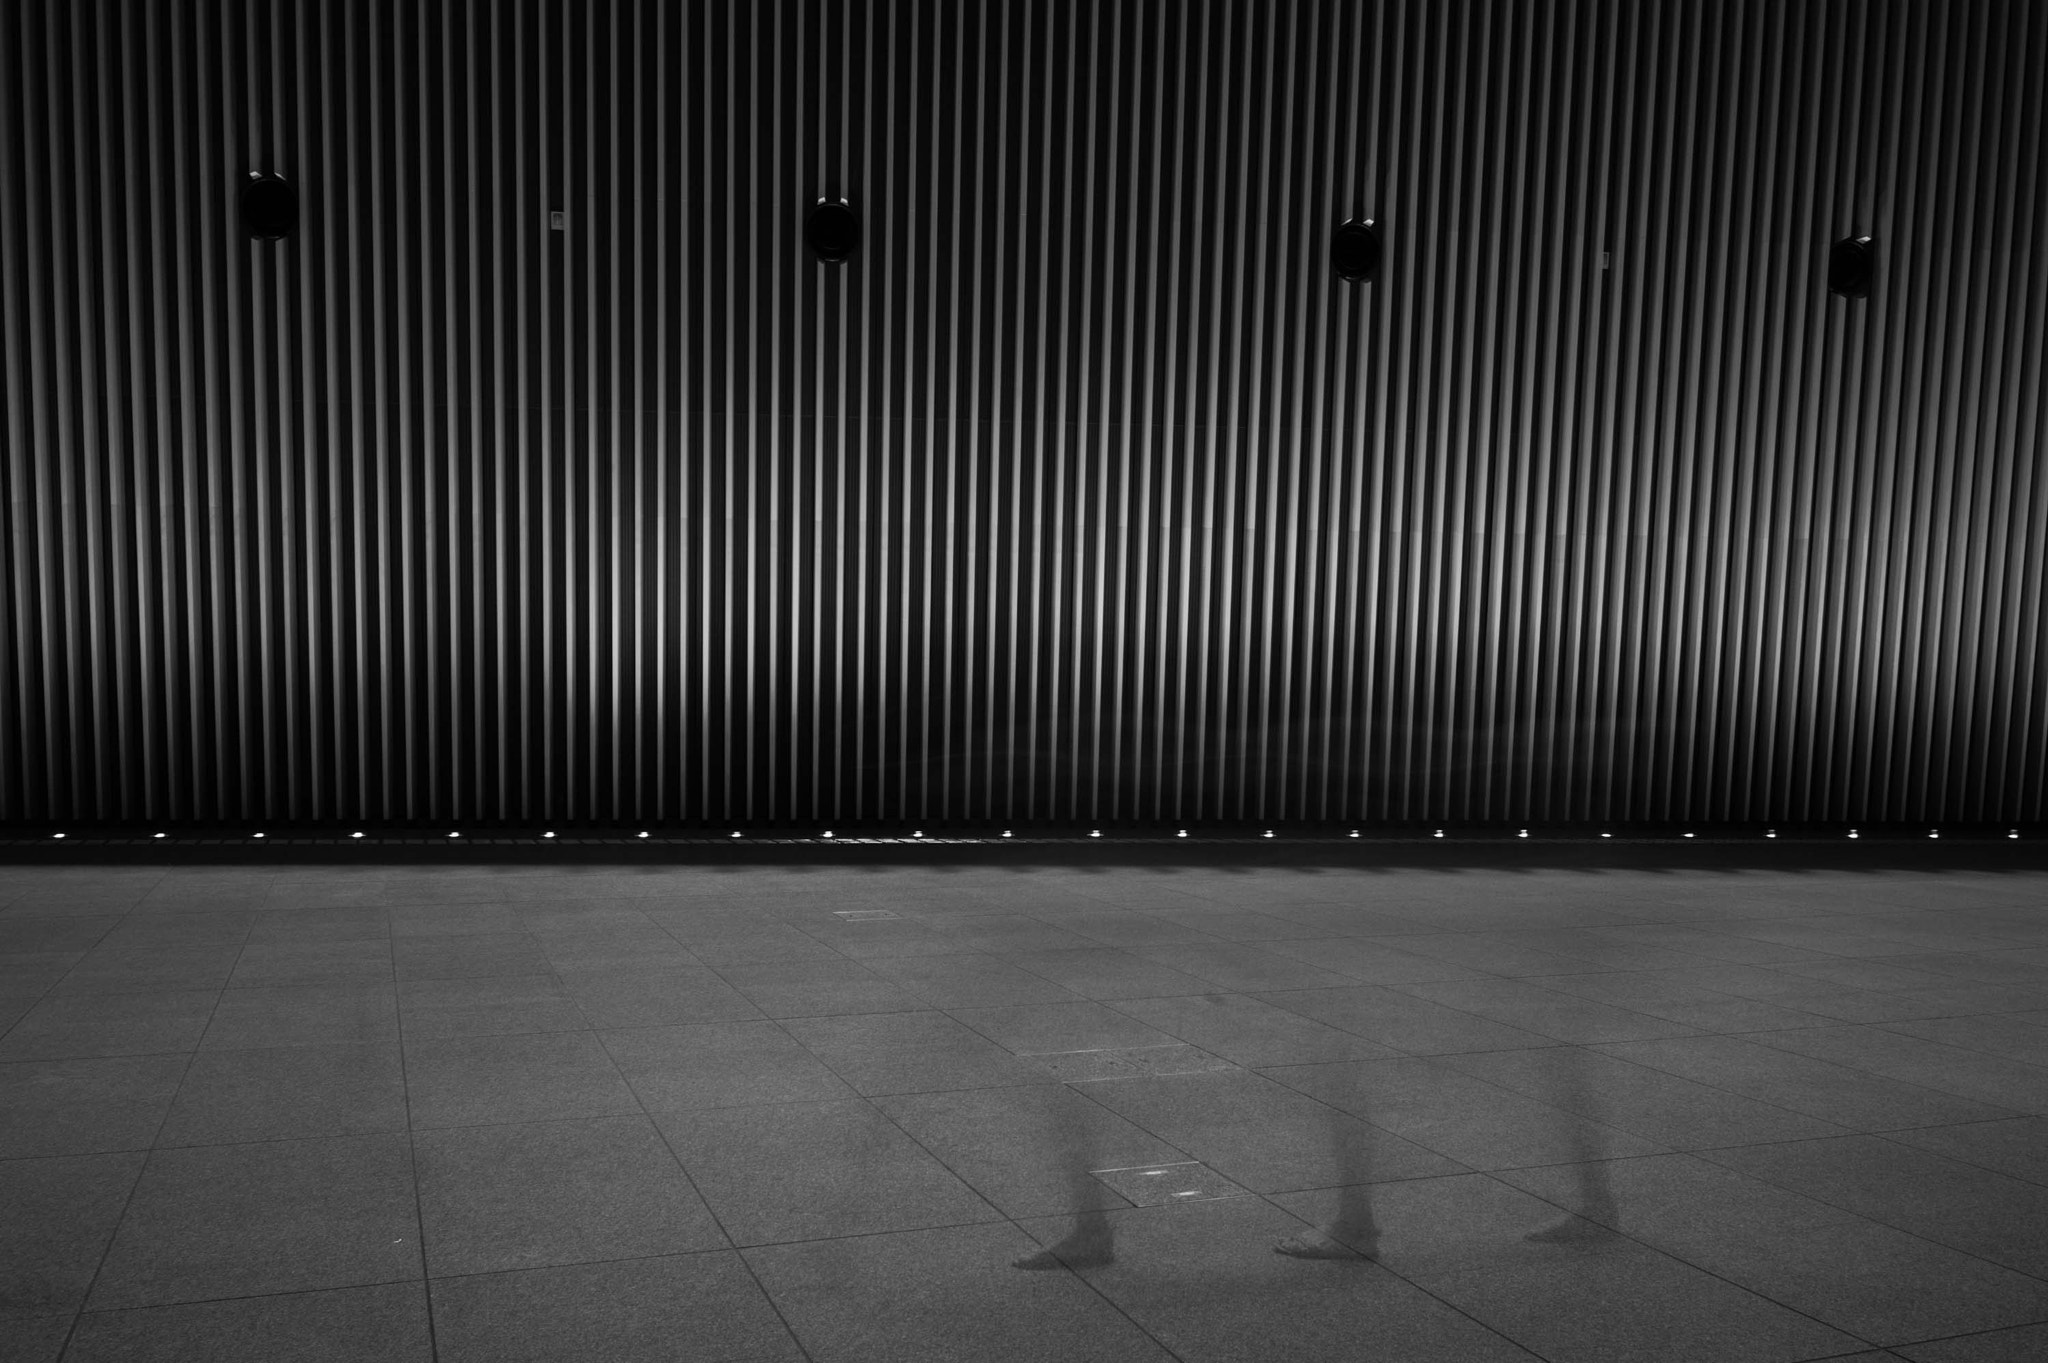 Photograph steps by Takeshi Imai on 500px